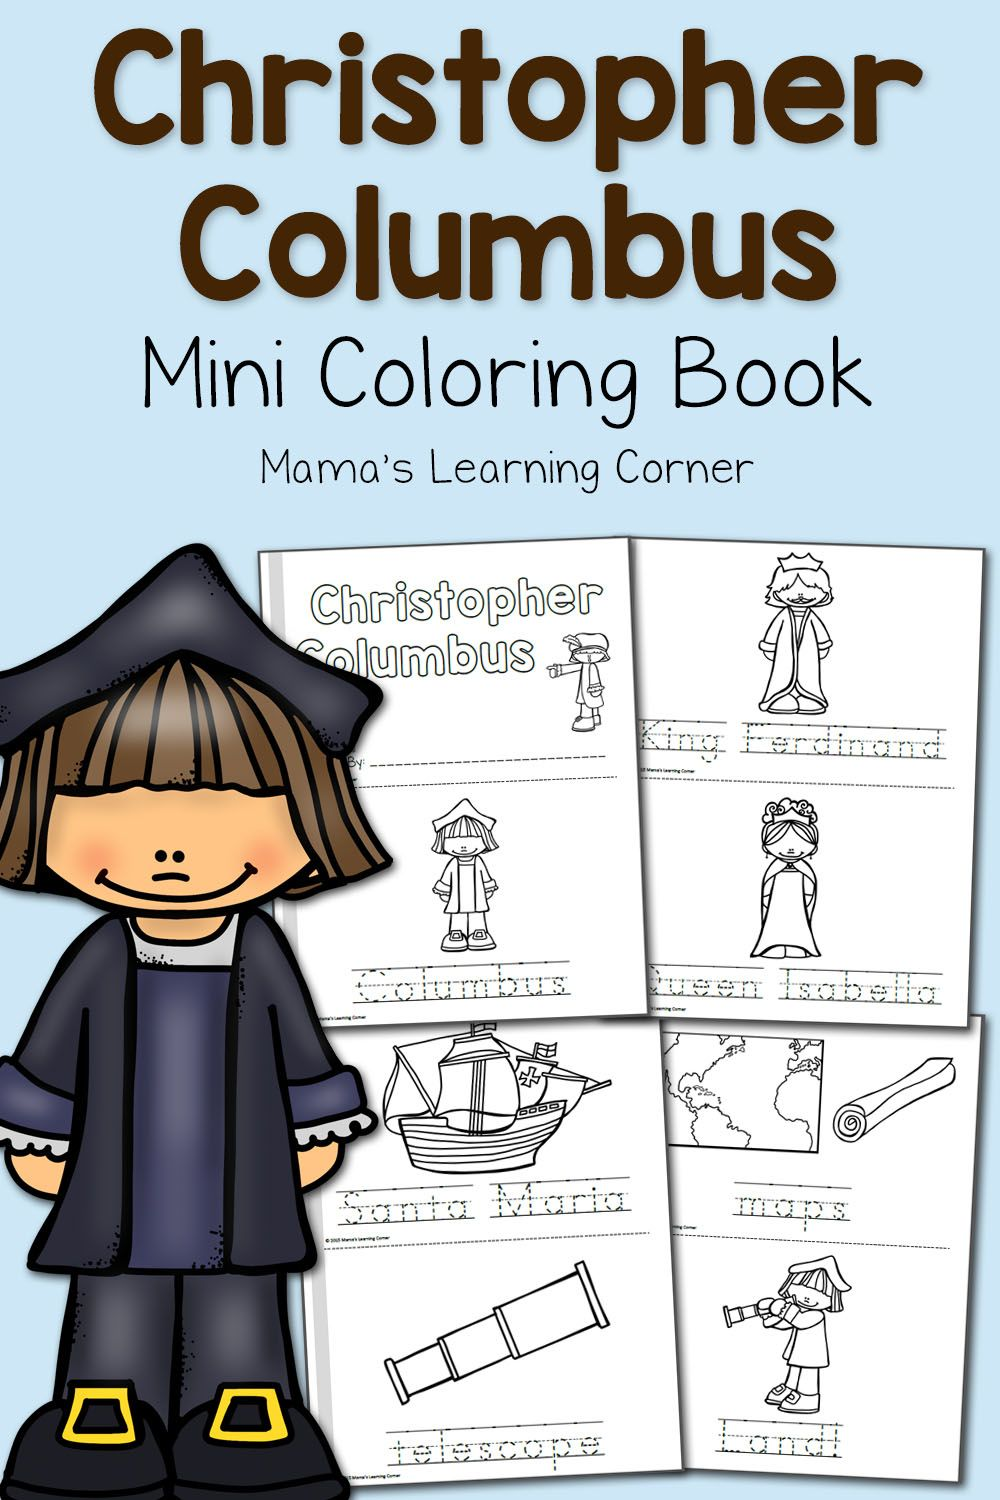 Christopher Columbus Coloring Pages | Pinterest | Christopher ...